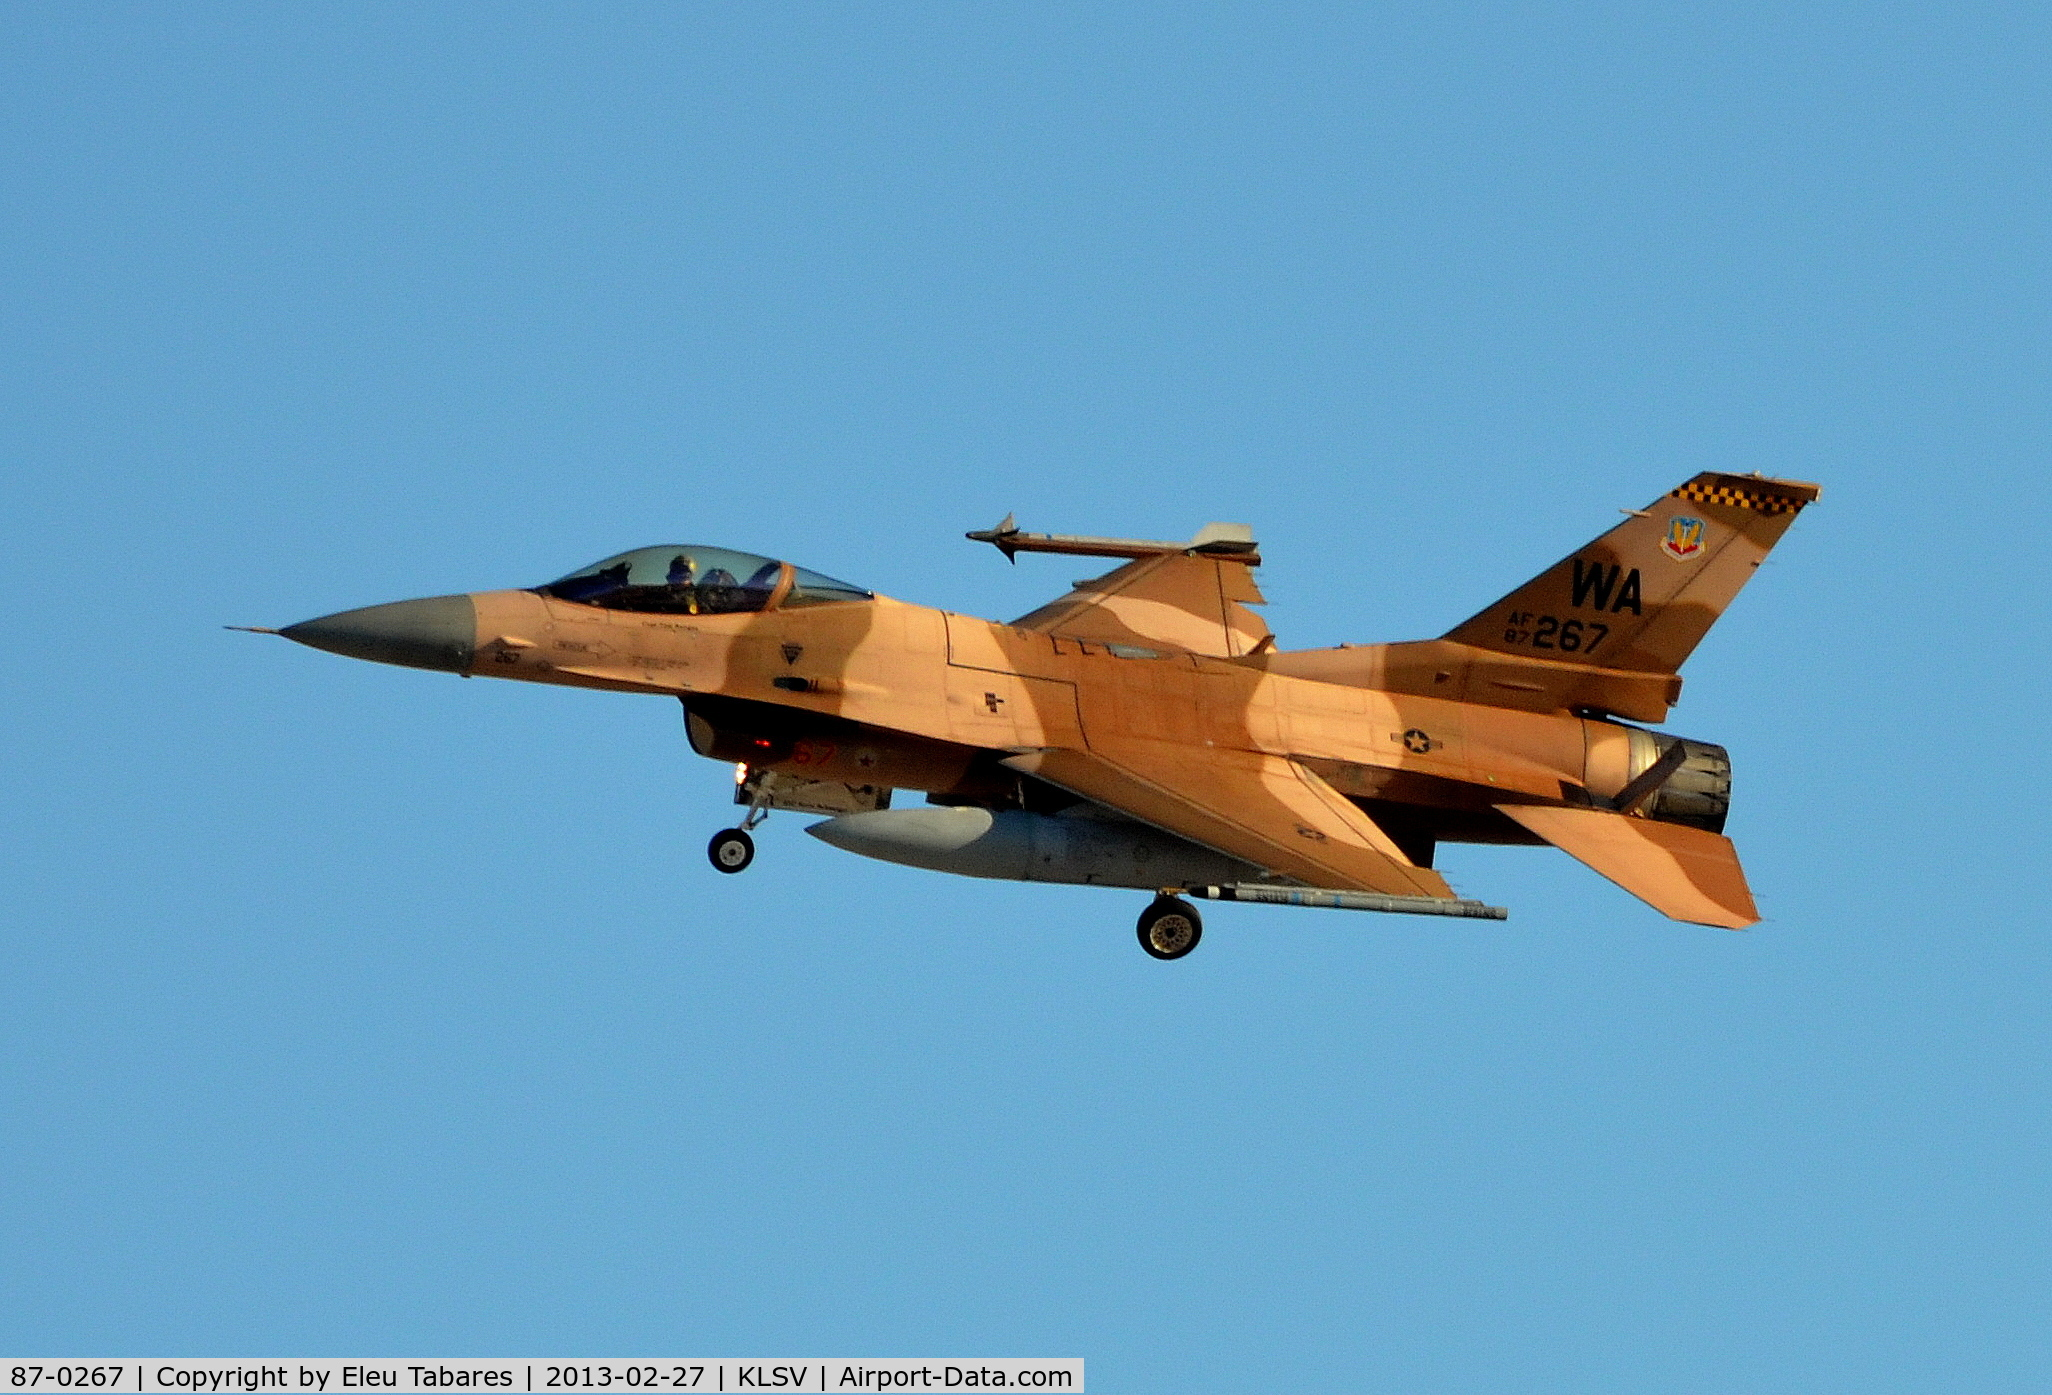 87-0267, General Dynamics F-16C Fighting Falcon C/N 5C-528, TAken during Red Flag Exercise at Nellis Air Force Base, Nevada.